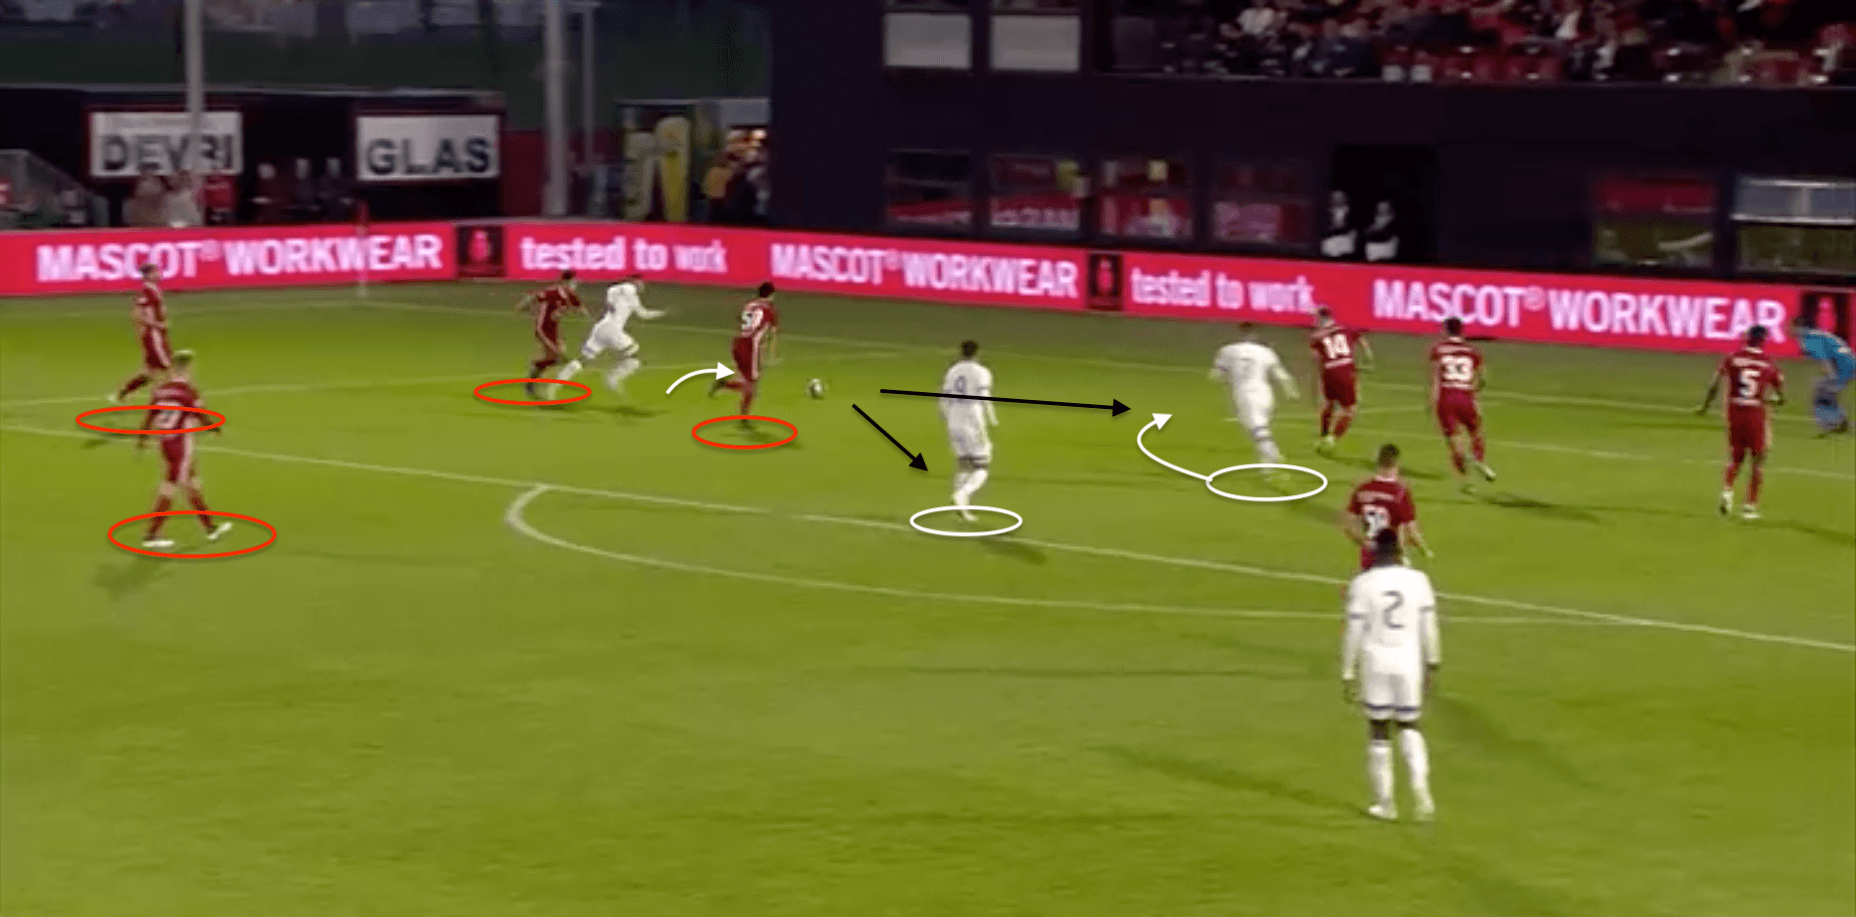 Eredivisie 2018/19 Tactical Analysis: Mohammed Ihattaren at PSV